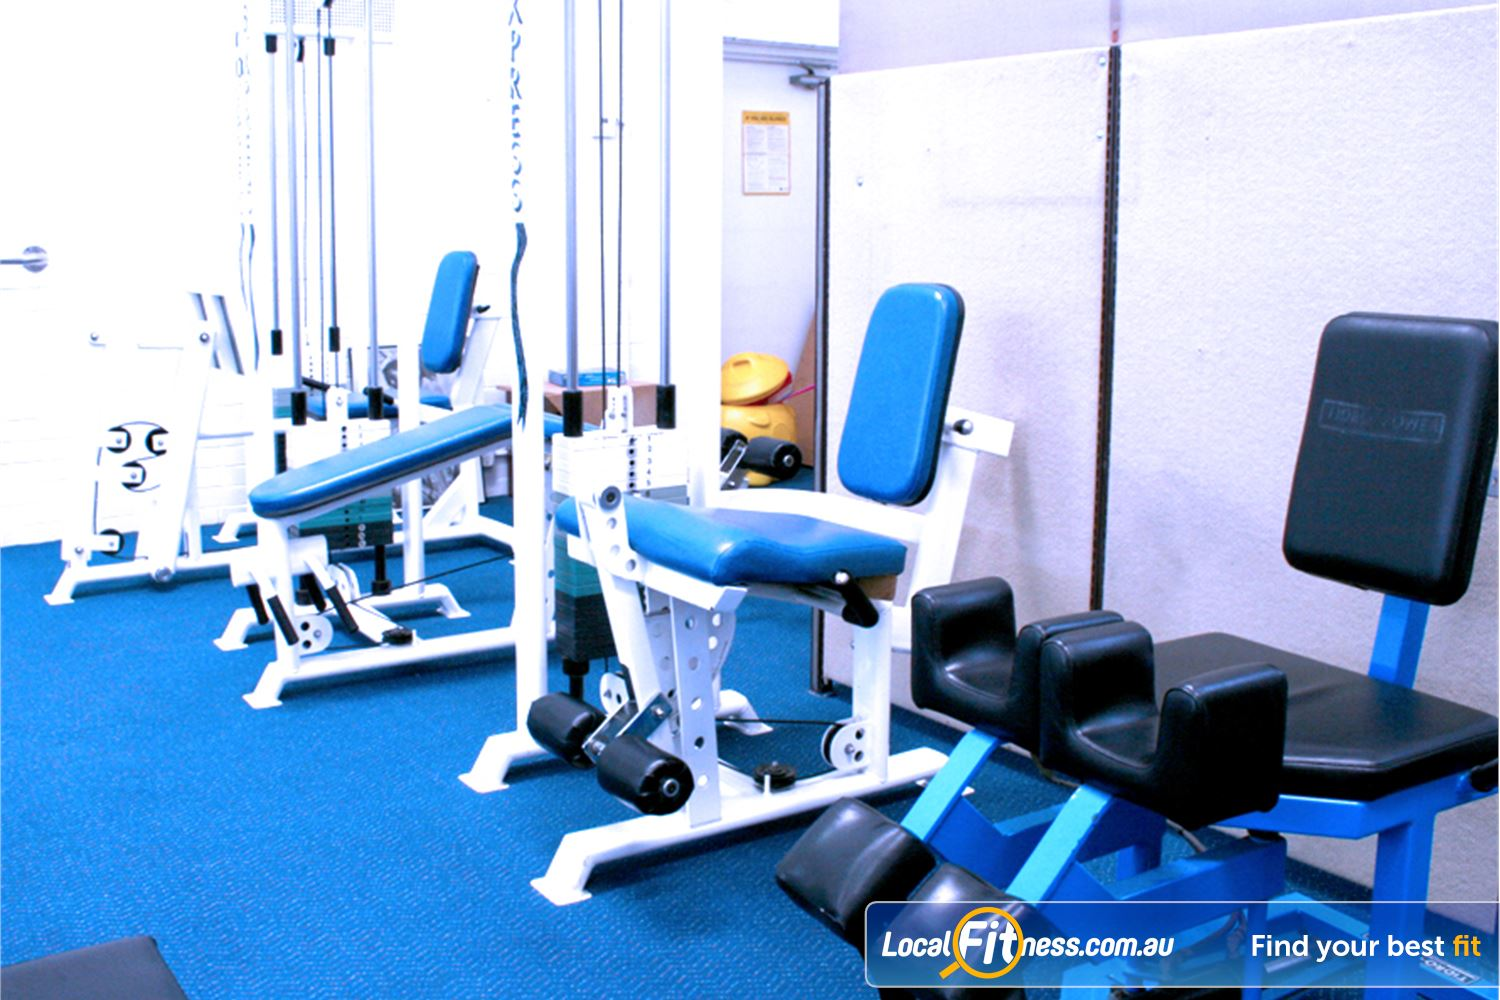 Leading Edge Health & Fitness Glen Waverley Our Glen Waverley gym provides easy to use pin-loading machines.